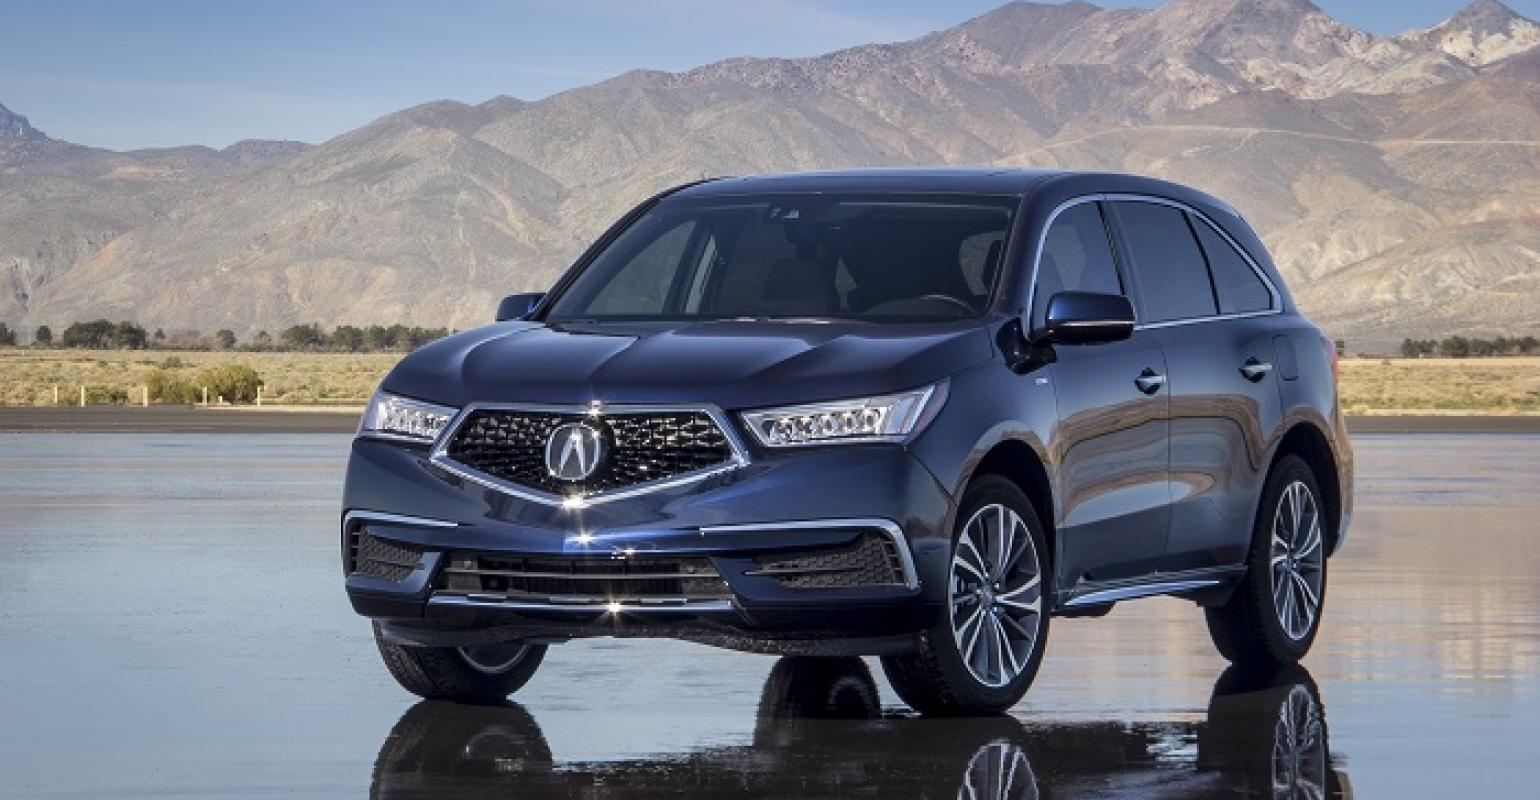 New MDX Hybrid Acura Prices CUV Below Comps WardsAuto - Acura mdx prices